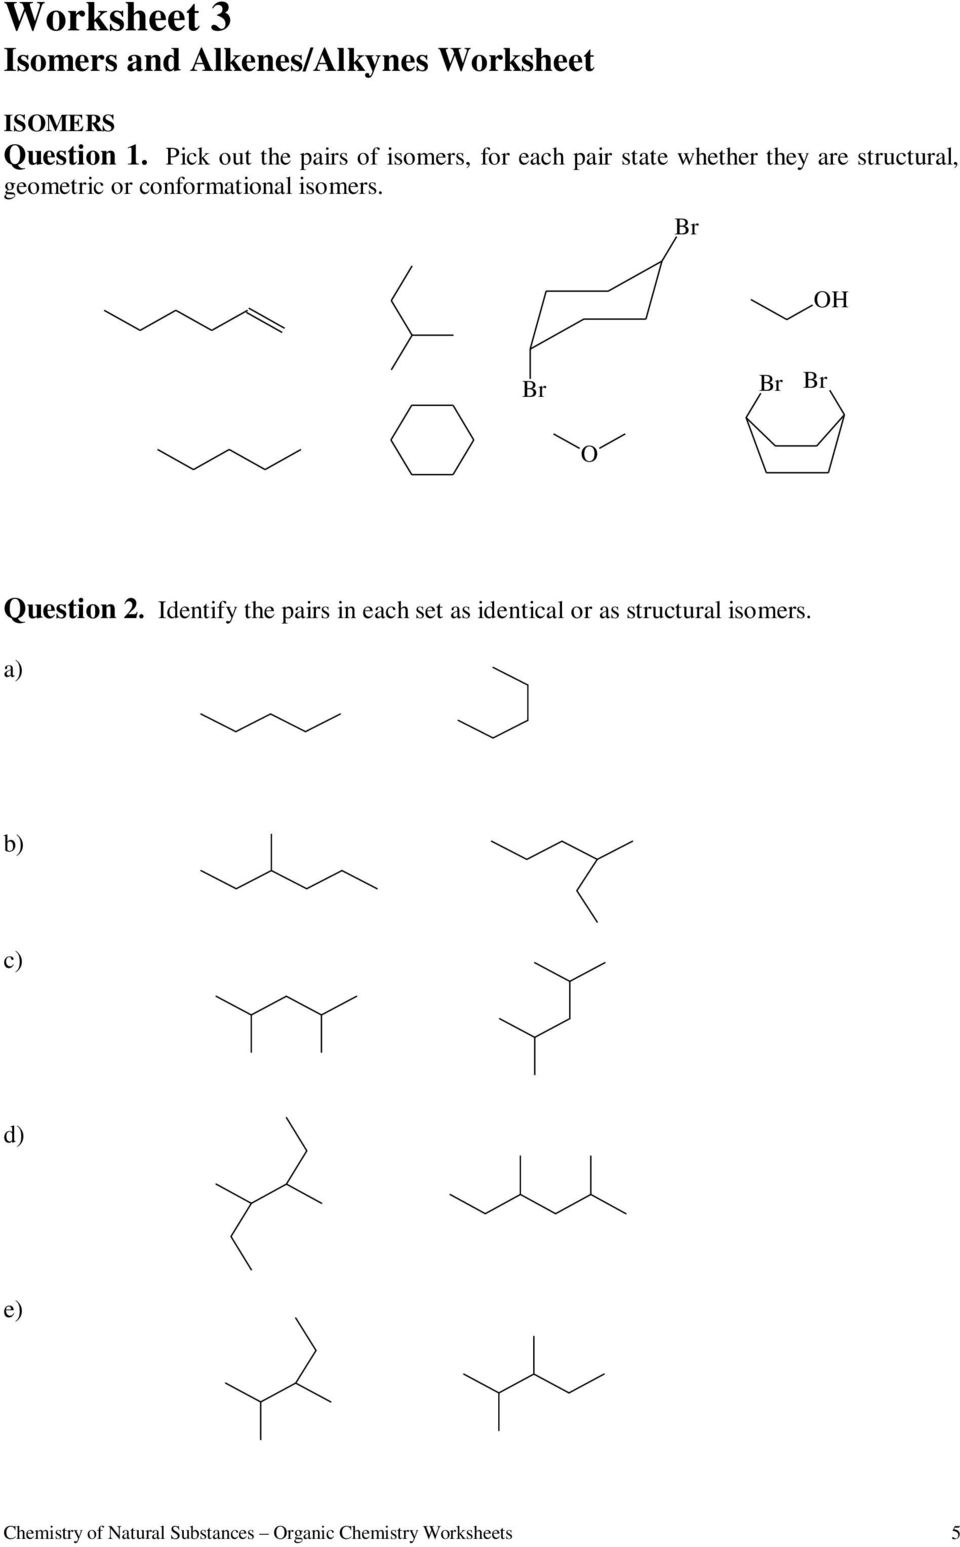 Worksheets For Organic Chemistry Pdf